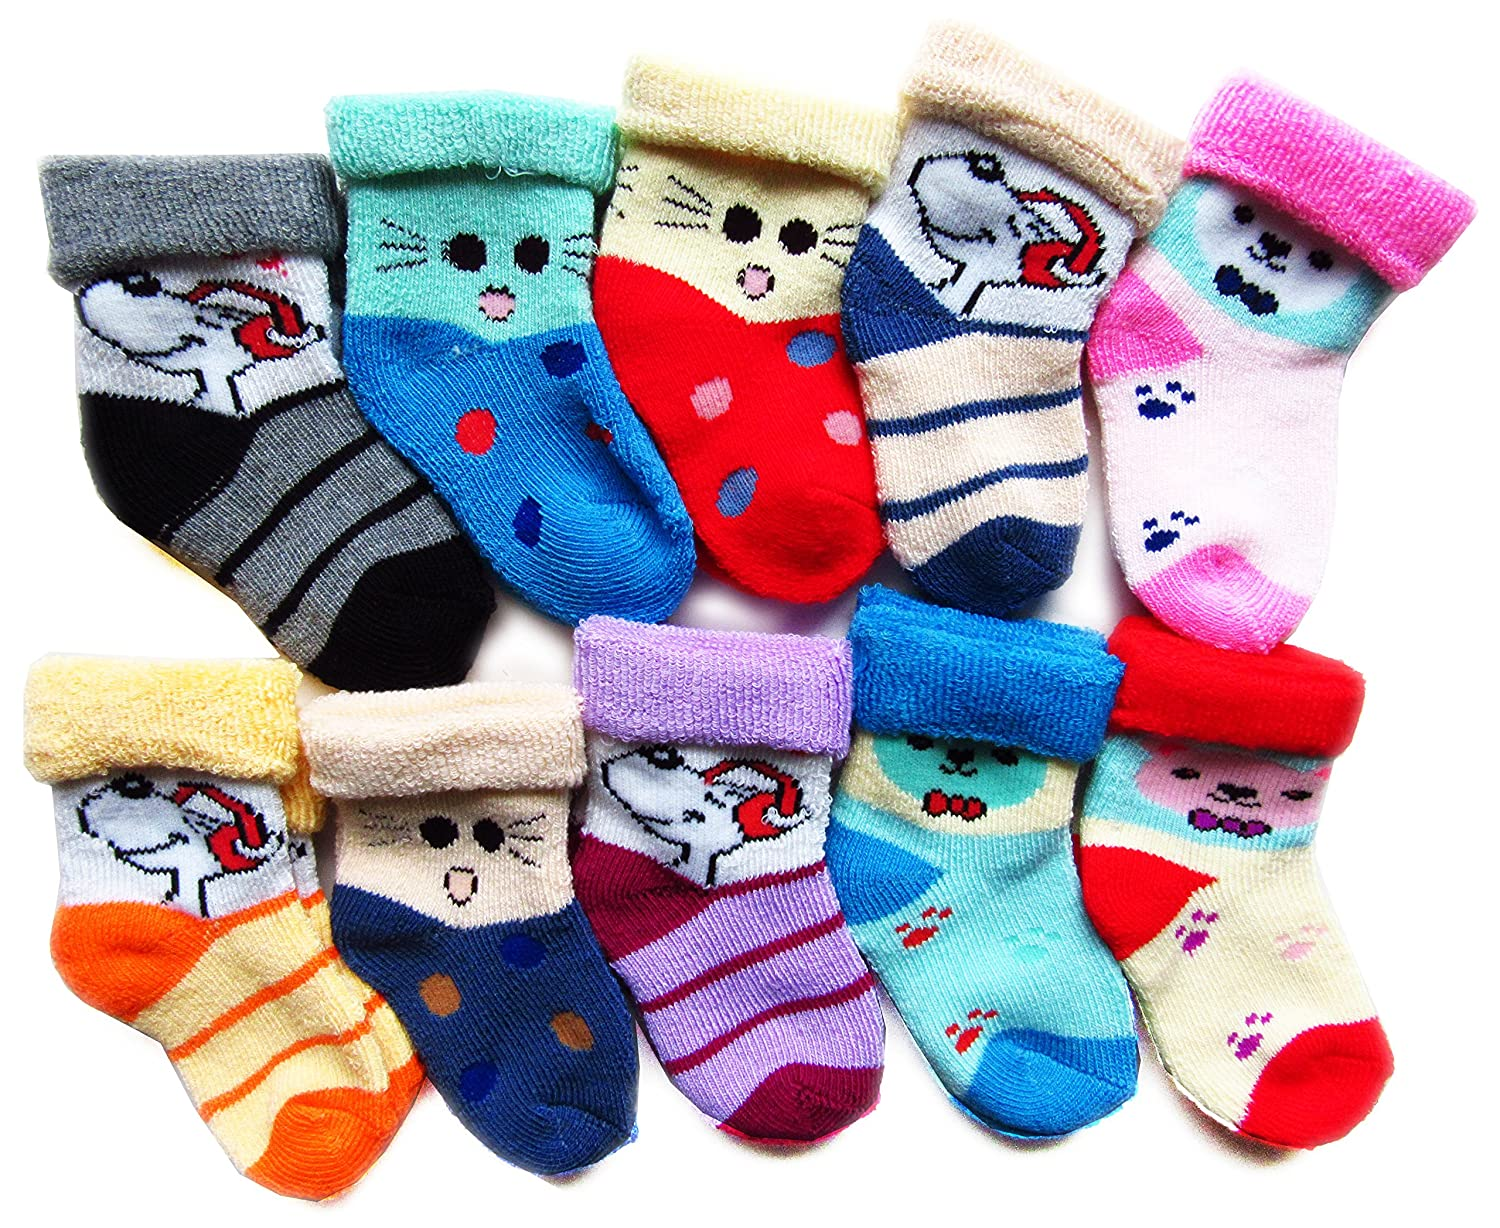 RC. ROYAL CLASS Baby Boy's Cotton Socks (Multicolour, 2 -8 Months) -Pack of 10 Pairs